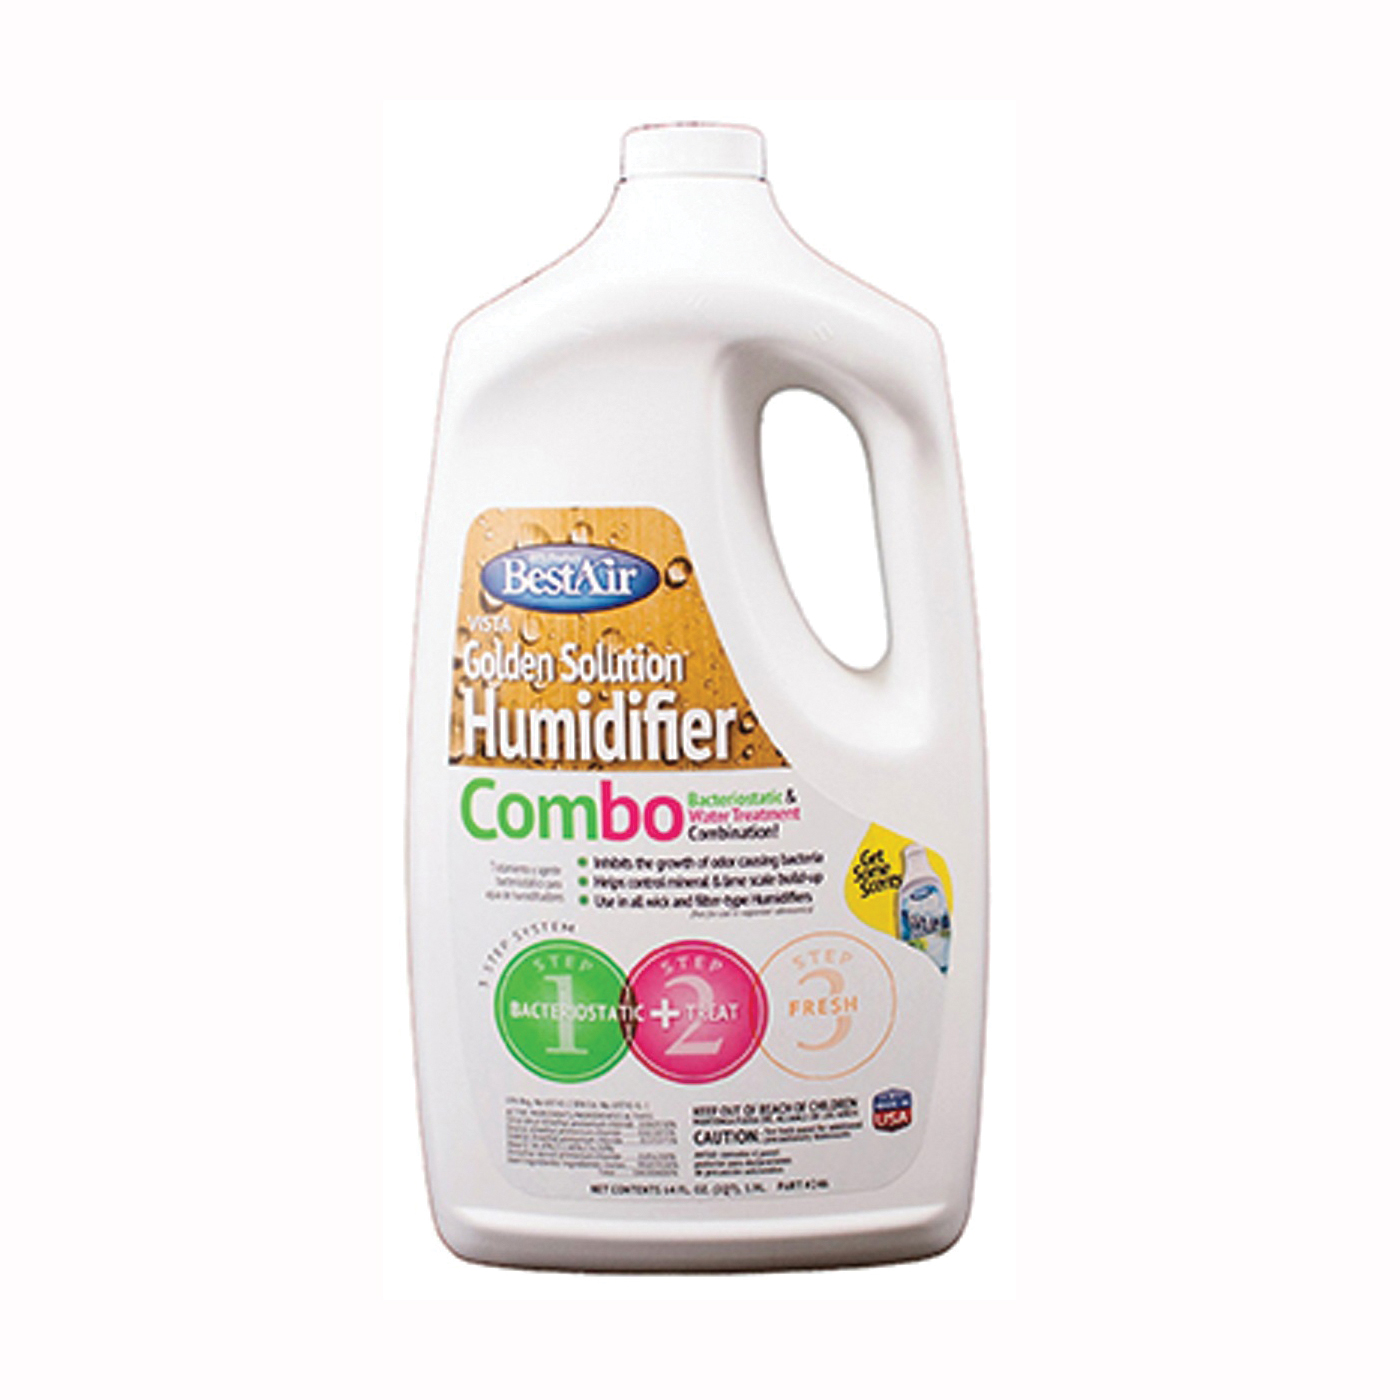 Picture of BestAir 246 Water Treatment Humidifier, Liquid, Clear, Pungent, 64 oz Package